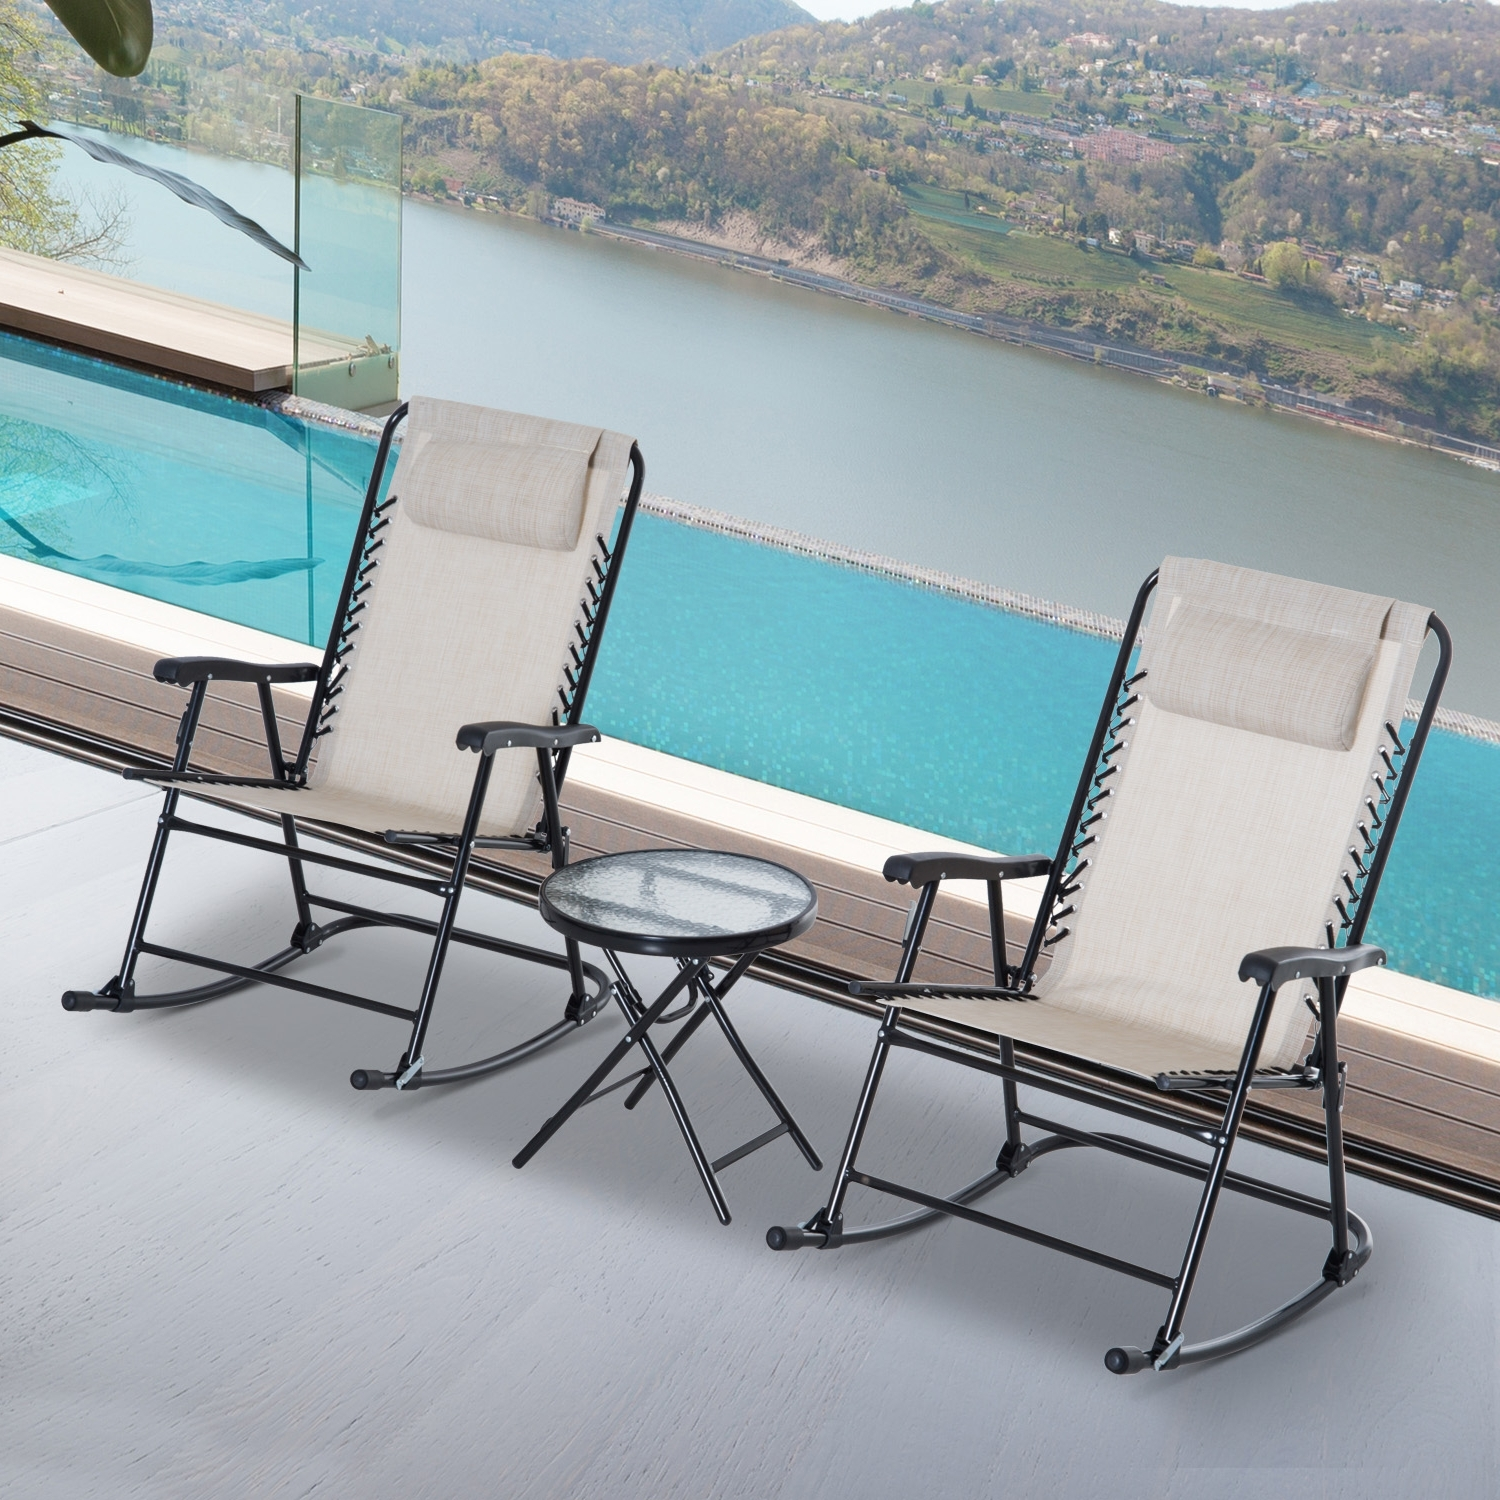 Outsunny 3 Piece Outdoor Rocking Chair Patio Table Seating Set Regarding Preferred Outdoor Rocking Chairs With Table (View 14 of 15)